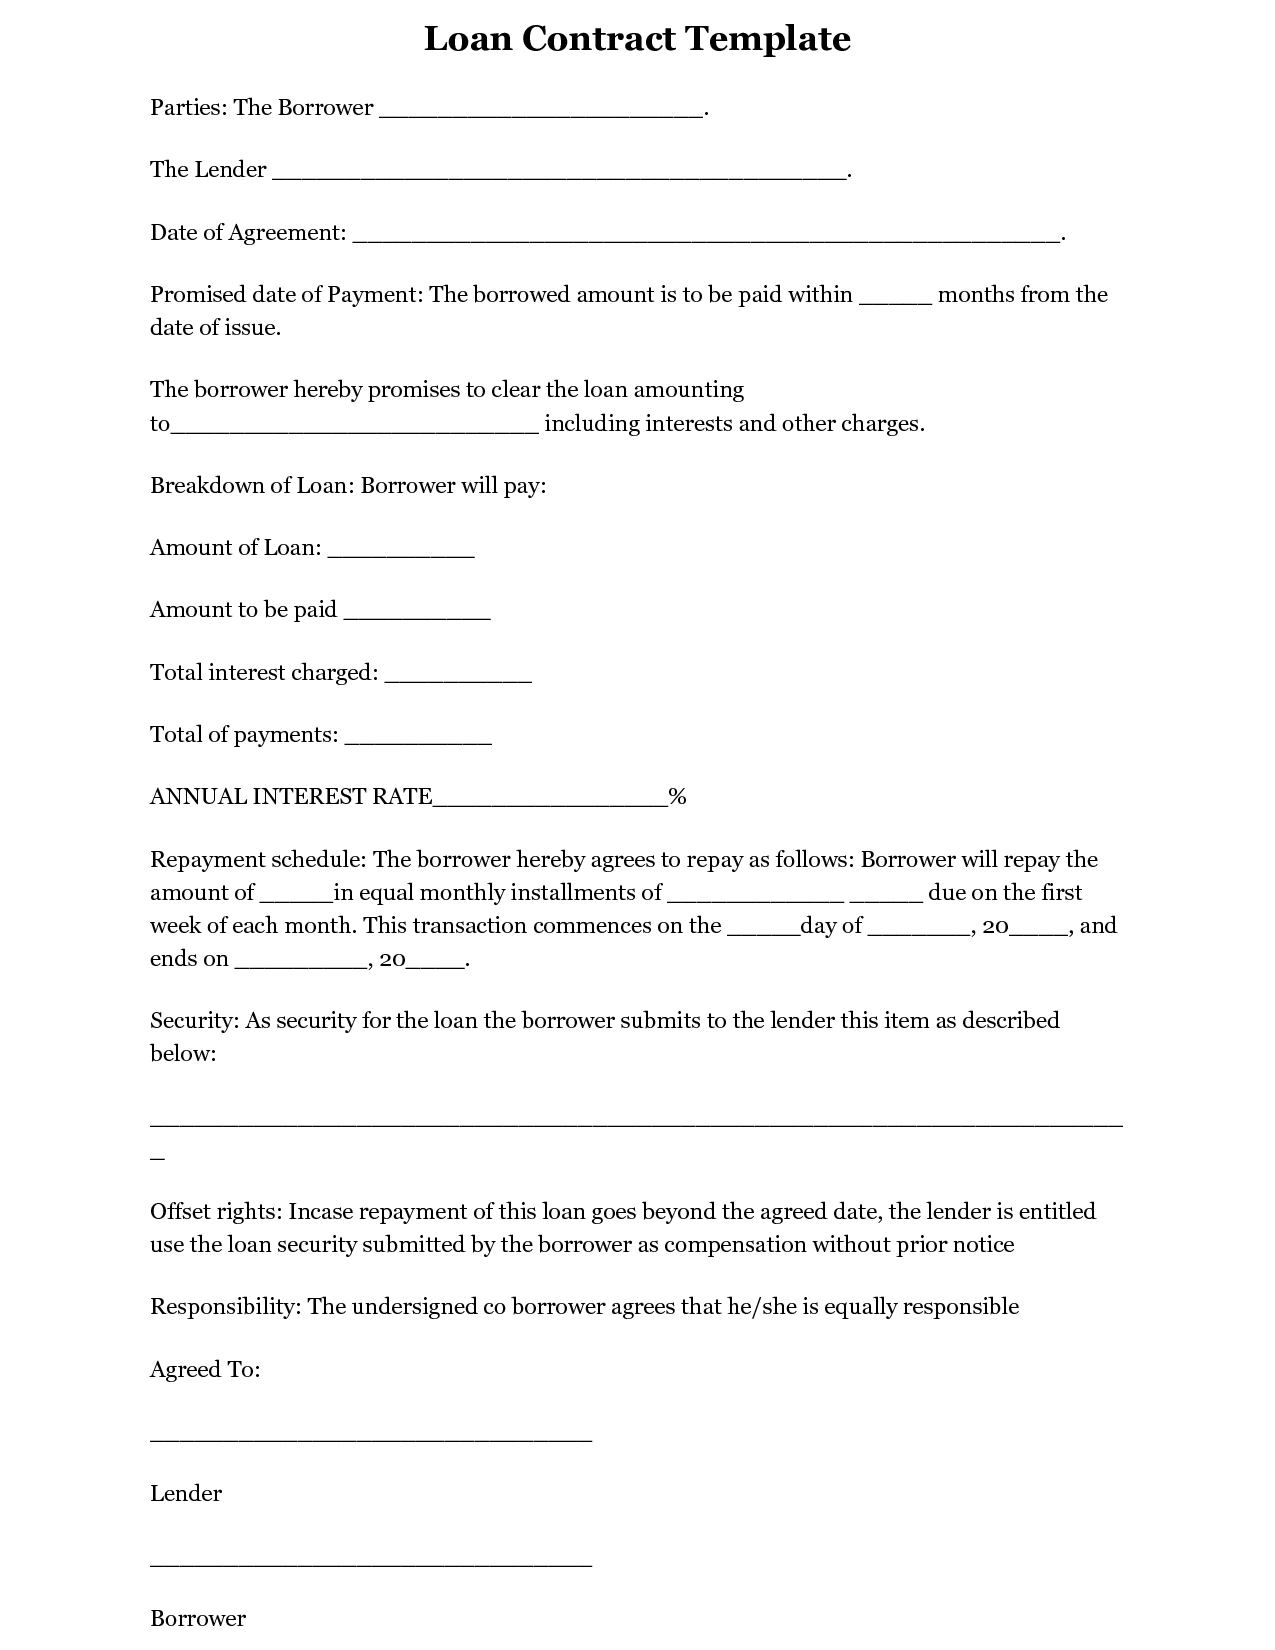 simple interest loan agreement template | koco yhinoha simple